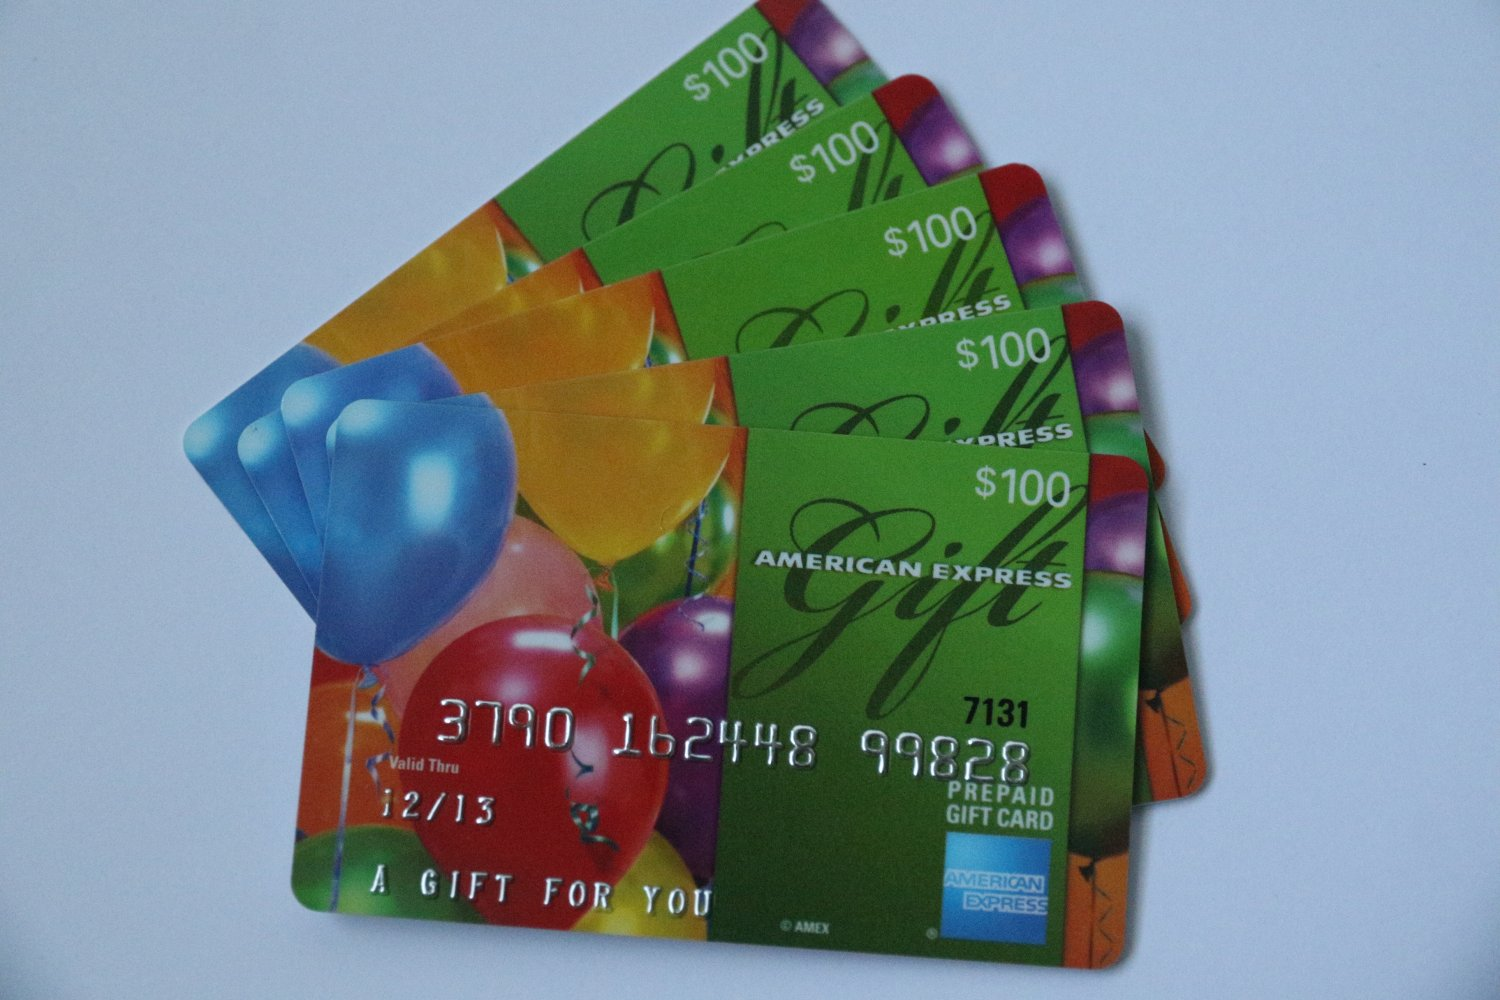 5 American Express Bank Card Balloons  Collectible Debit Credit Gift Empty No $0 Value